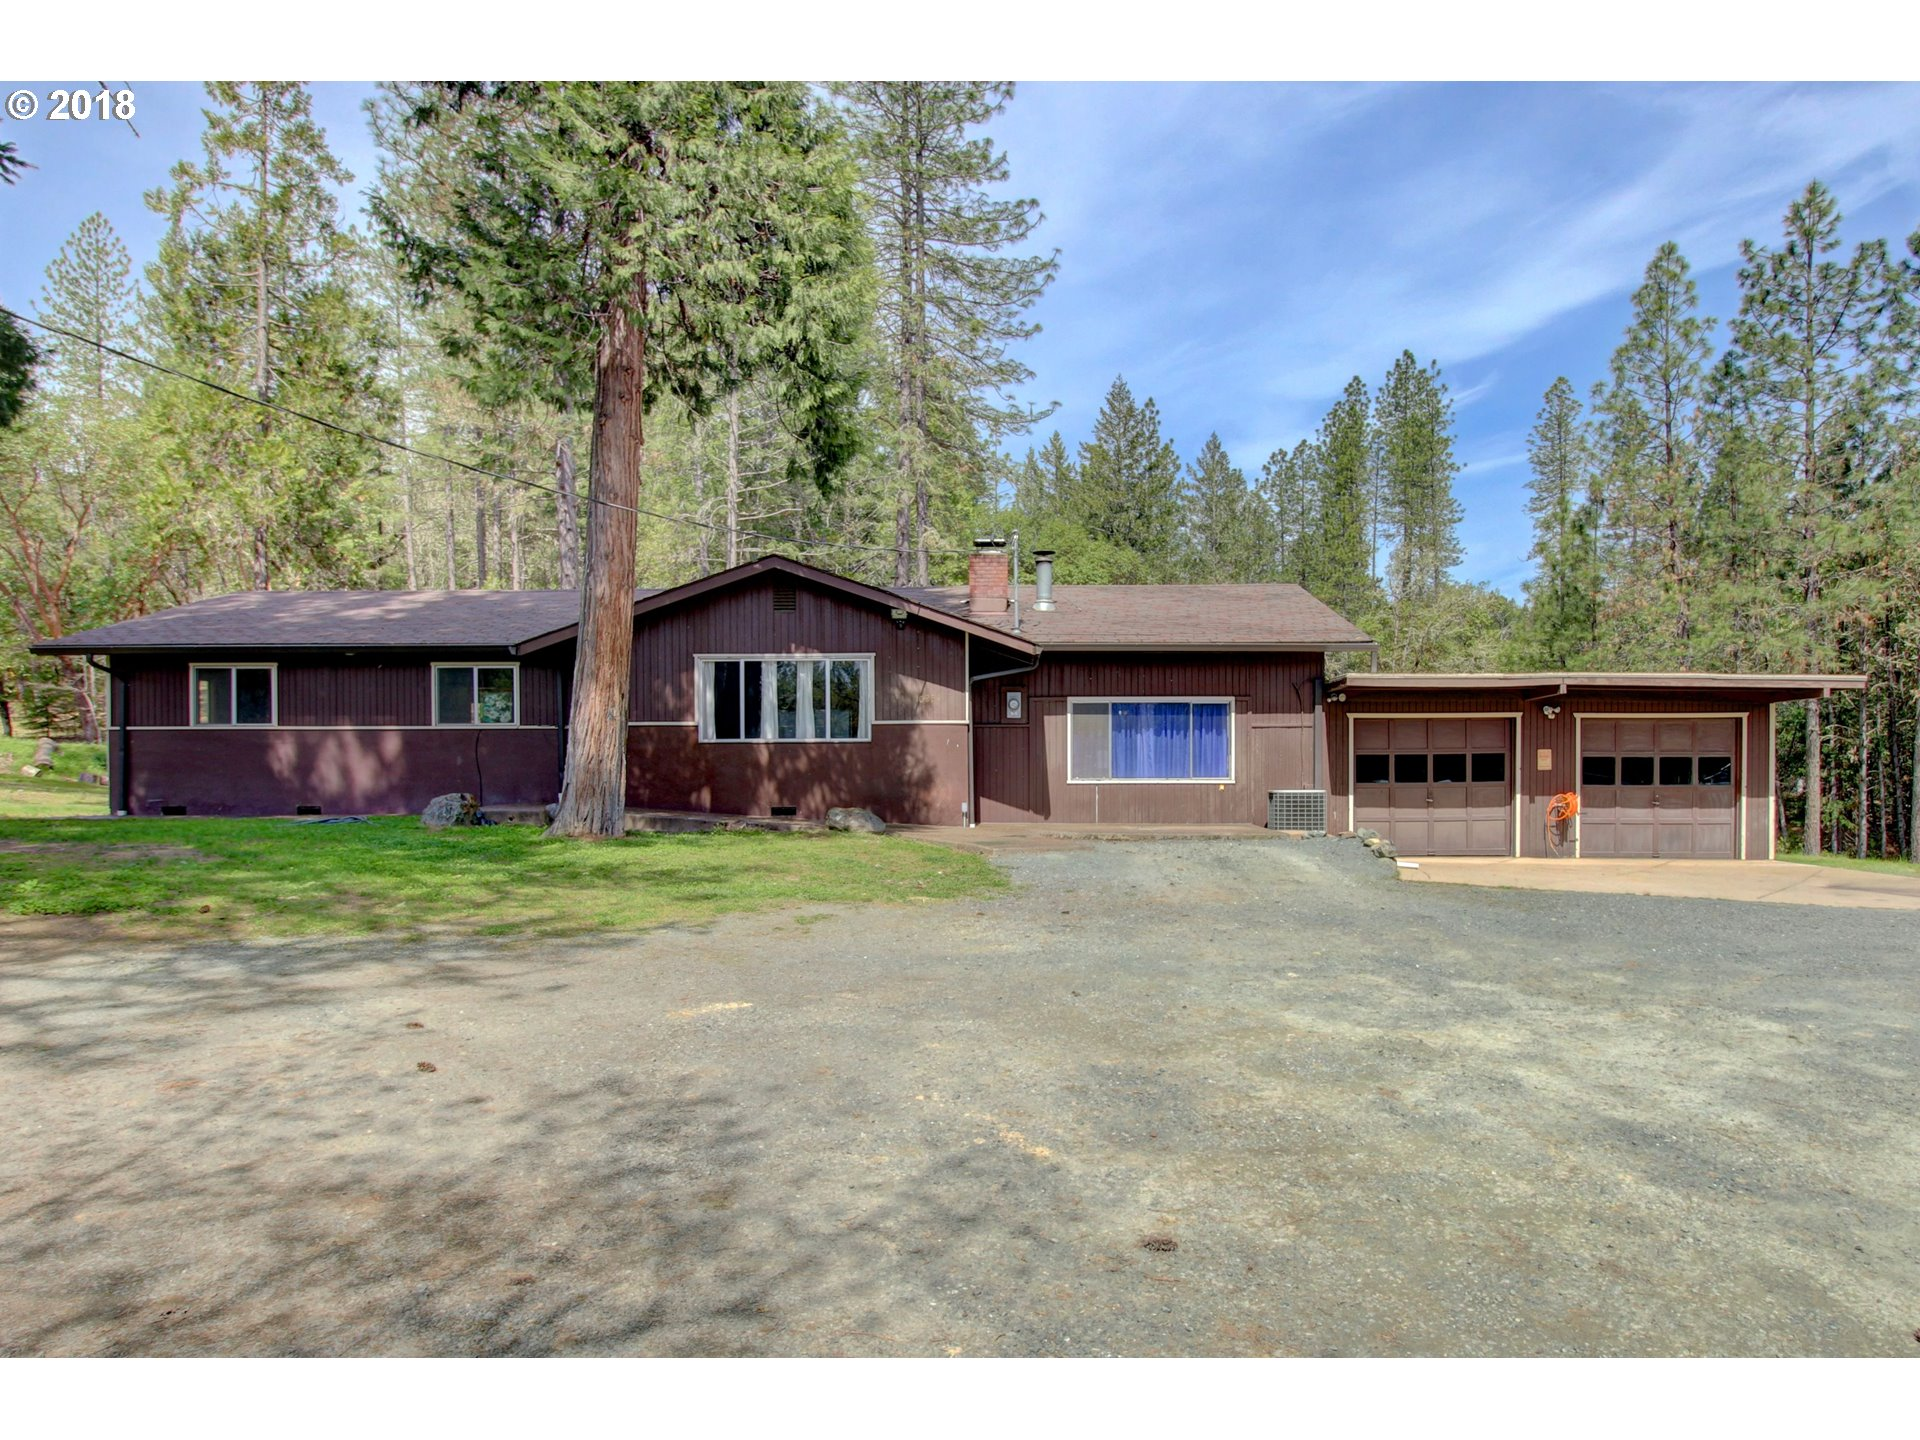 Rogue River, OR 3 Bedroom Home For Sale